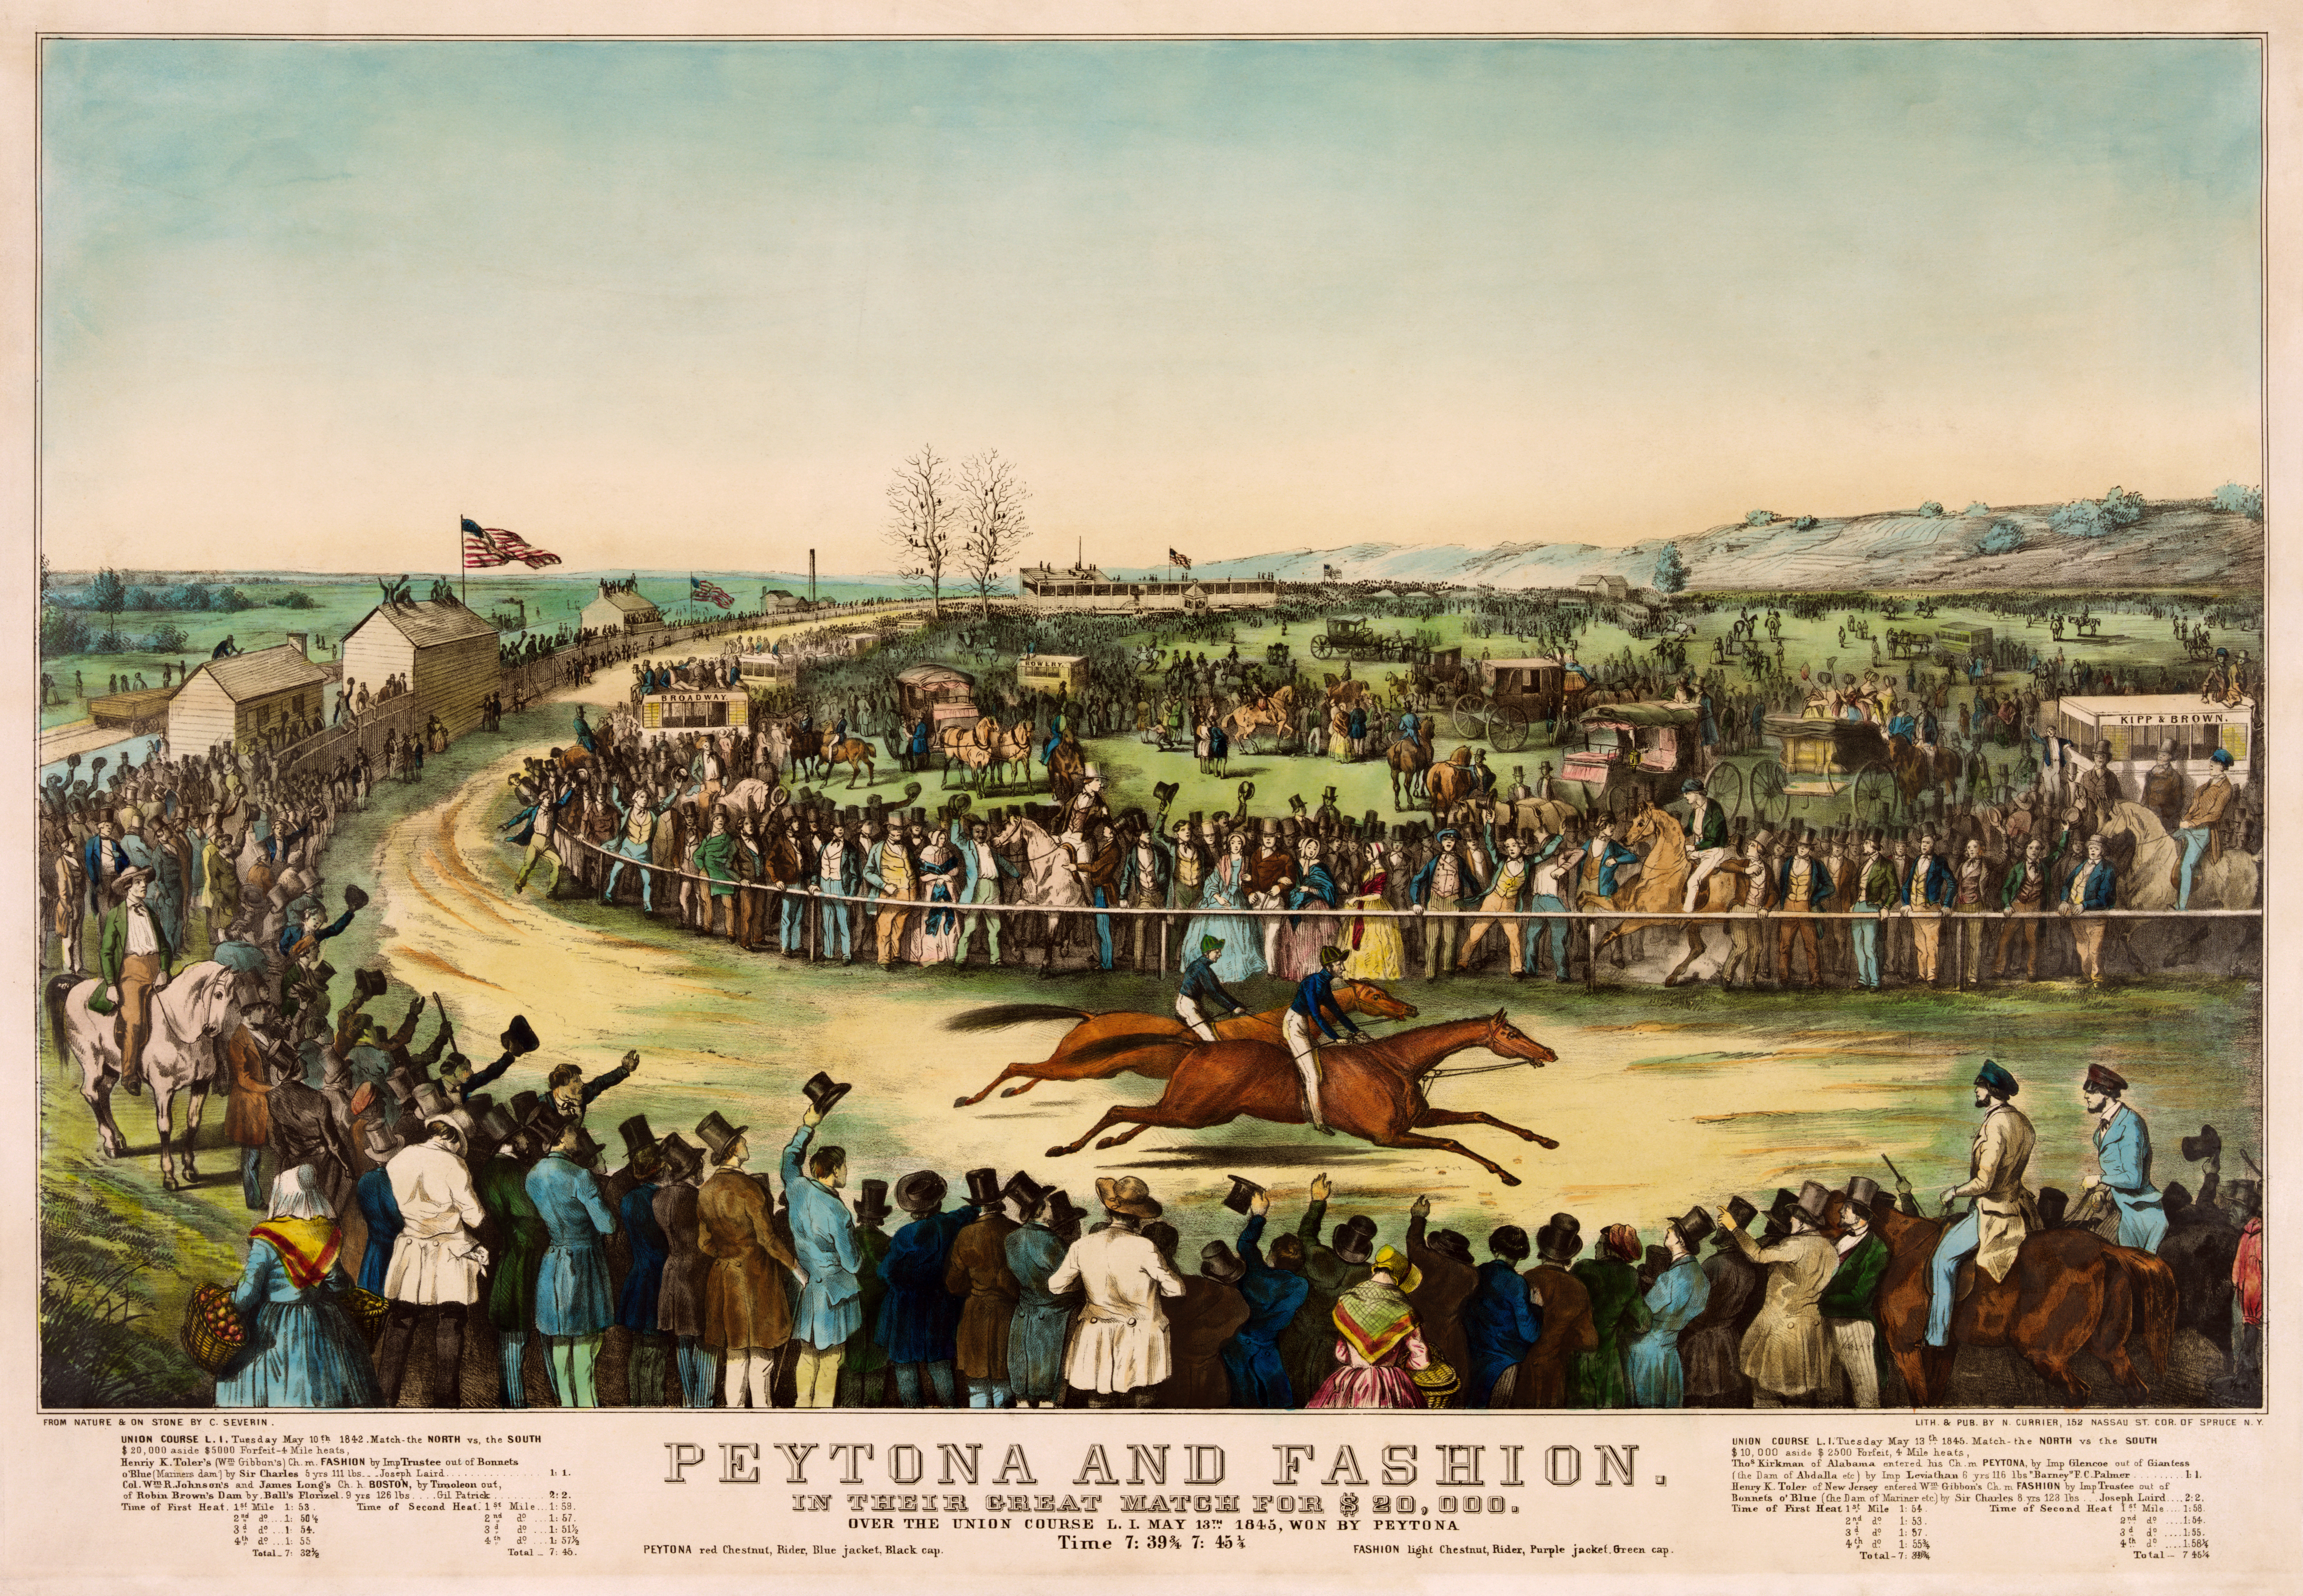 File:Peytona and Fashion in their great match for $20,000, 1845.jpg